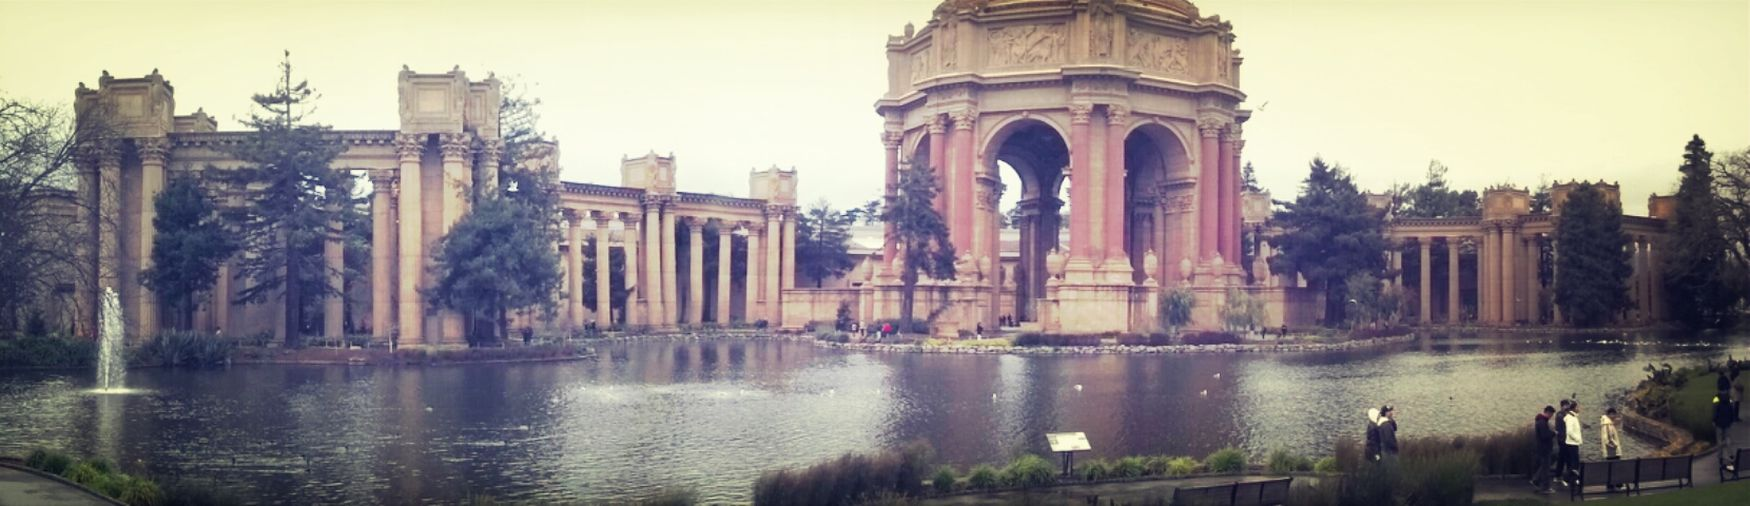 The Palace Of Fine Arts, SF